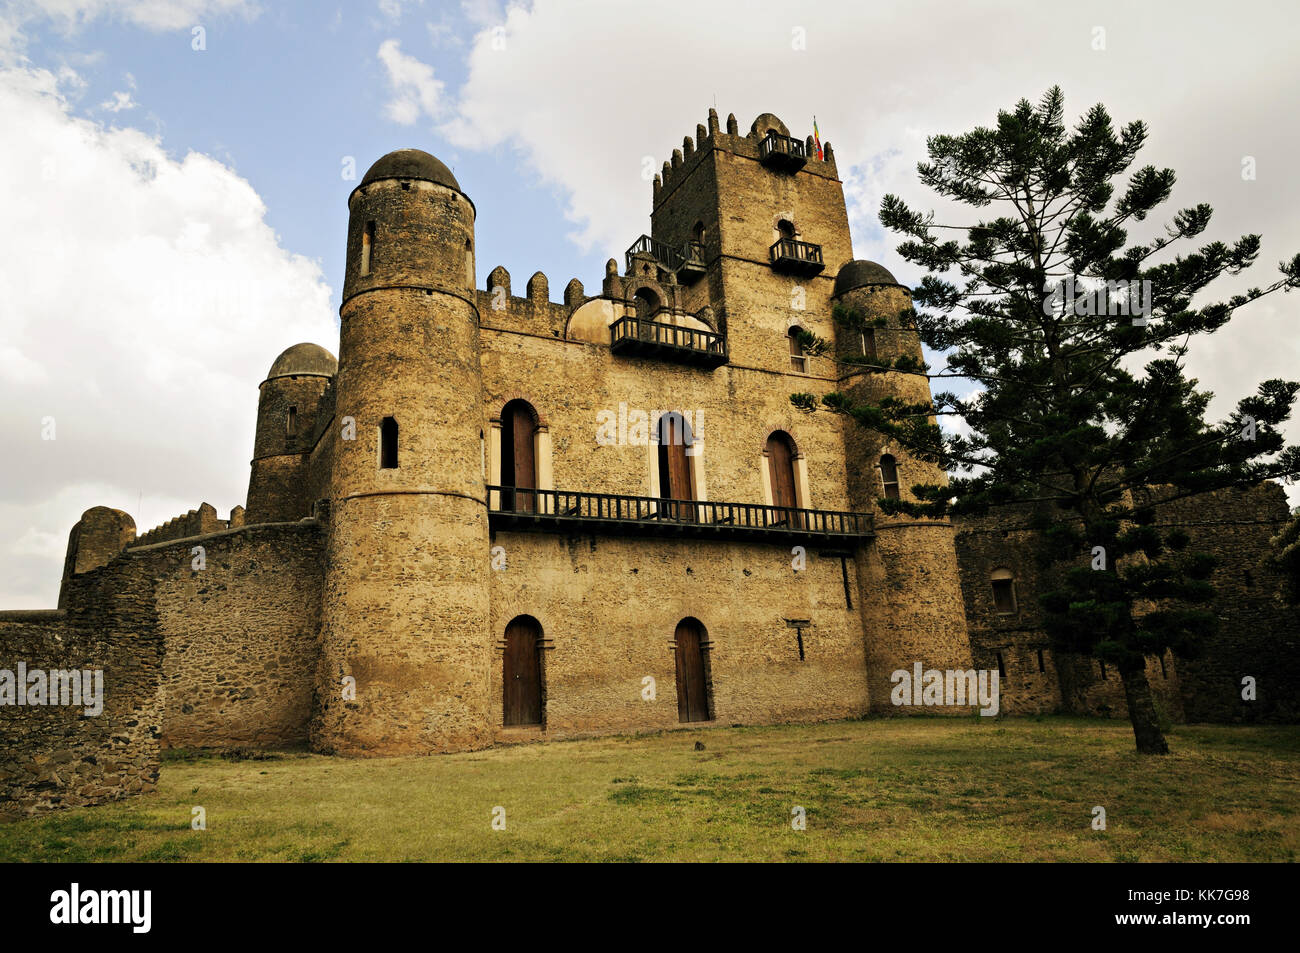 The Castle of Emperor Fasilides, Fasil Ghebbi, Gondar, Ethiopia Stock Photo